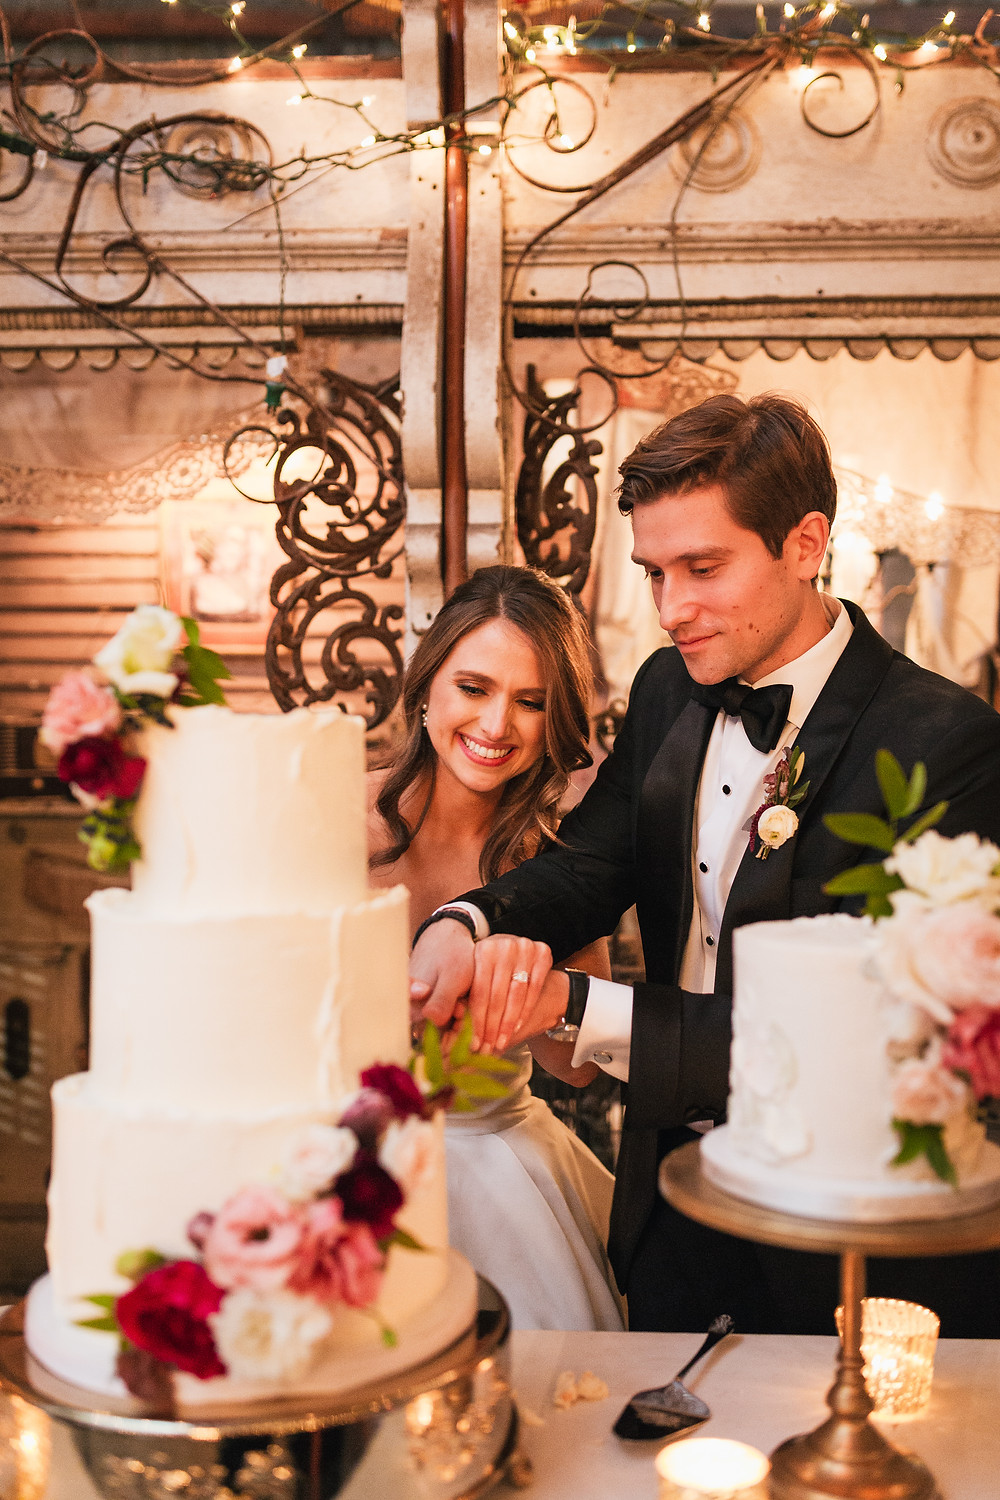 Lovegood Wedding & Event Rentals, New Orleans Vintage Rental Company for Corporate, Parties, and Weddings | Lounge Furniture in NOLA, Specialty Rentals, Decor across the Southeast, Old Warehouse Bride and Groom cutting the Cakes